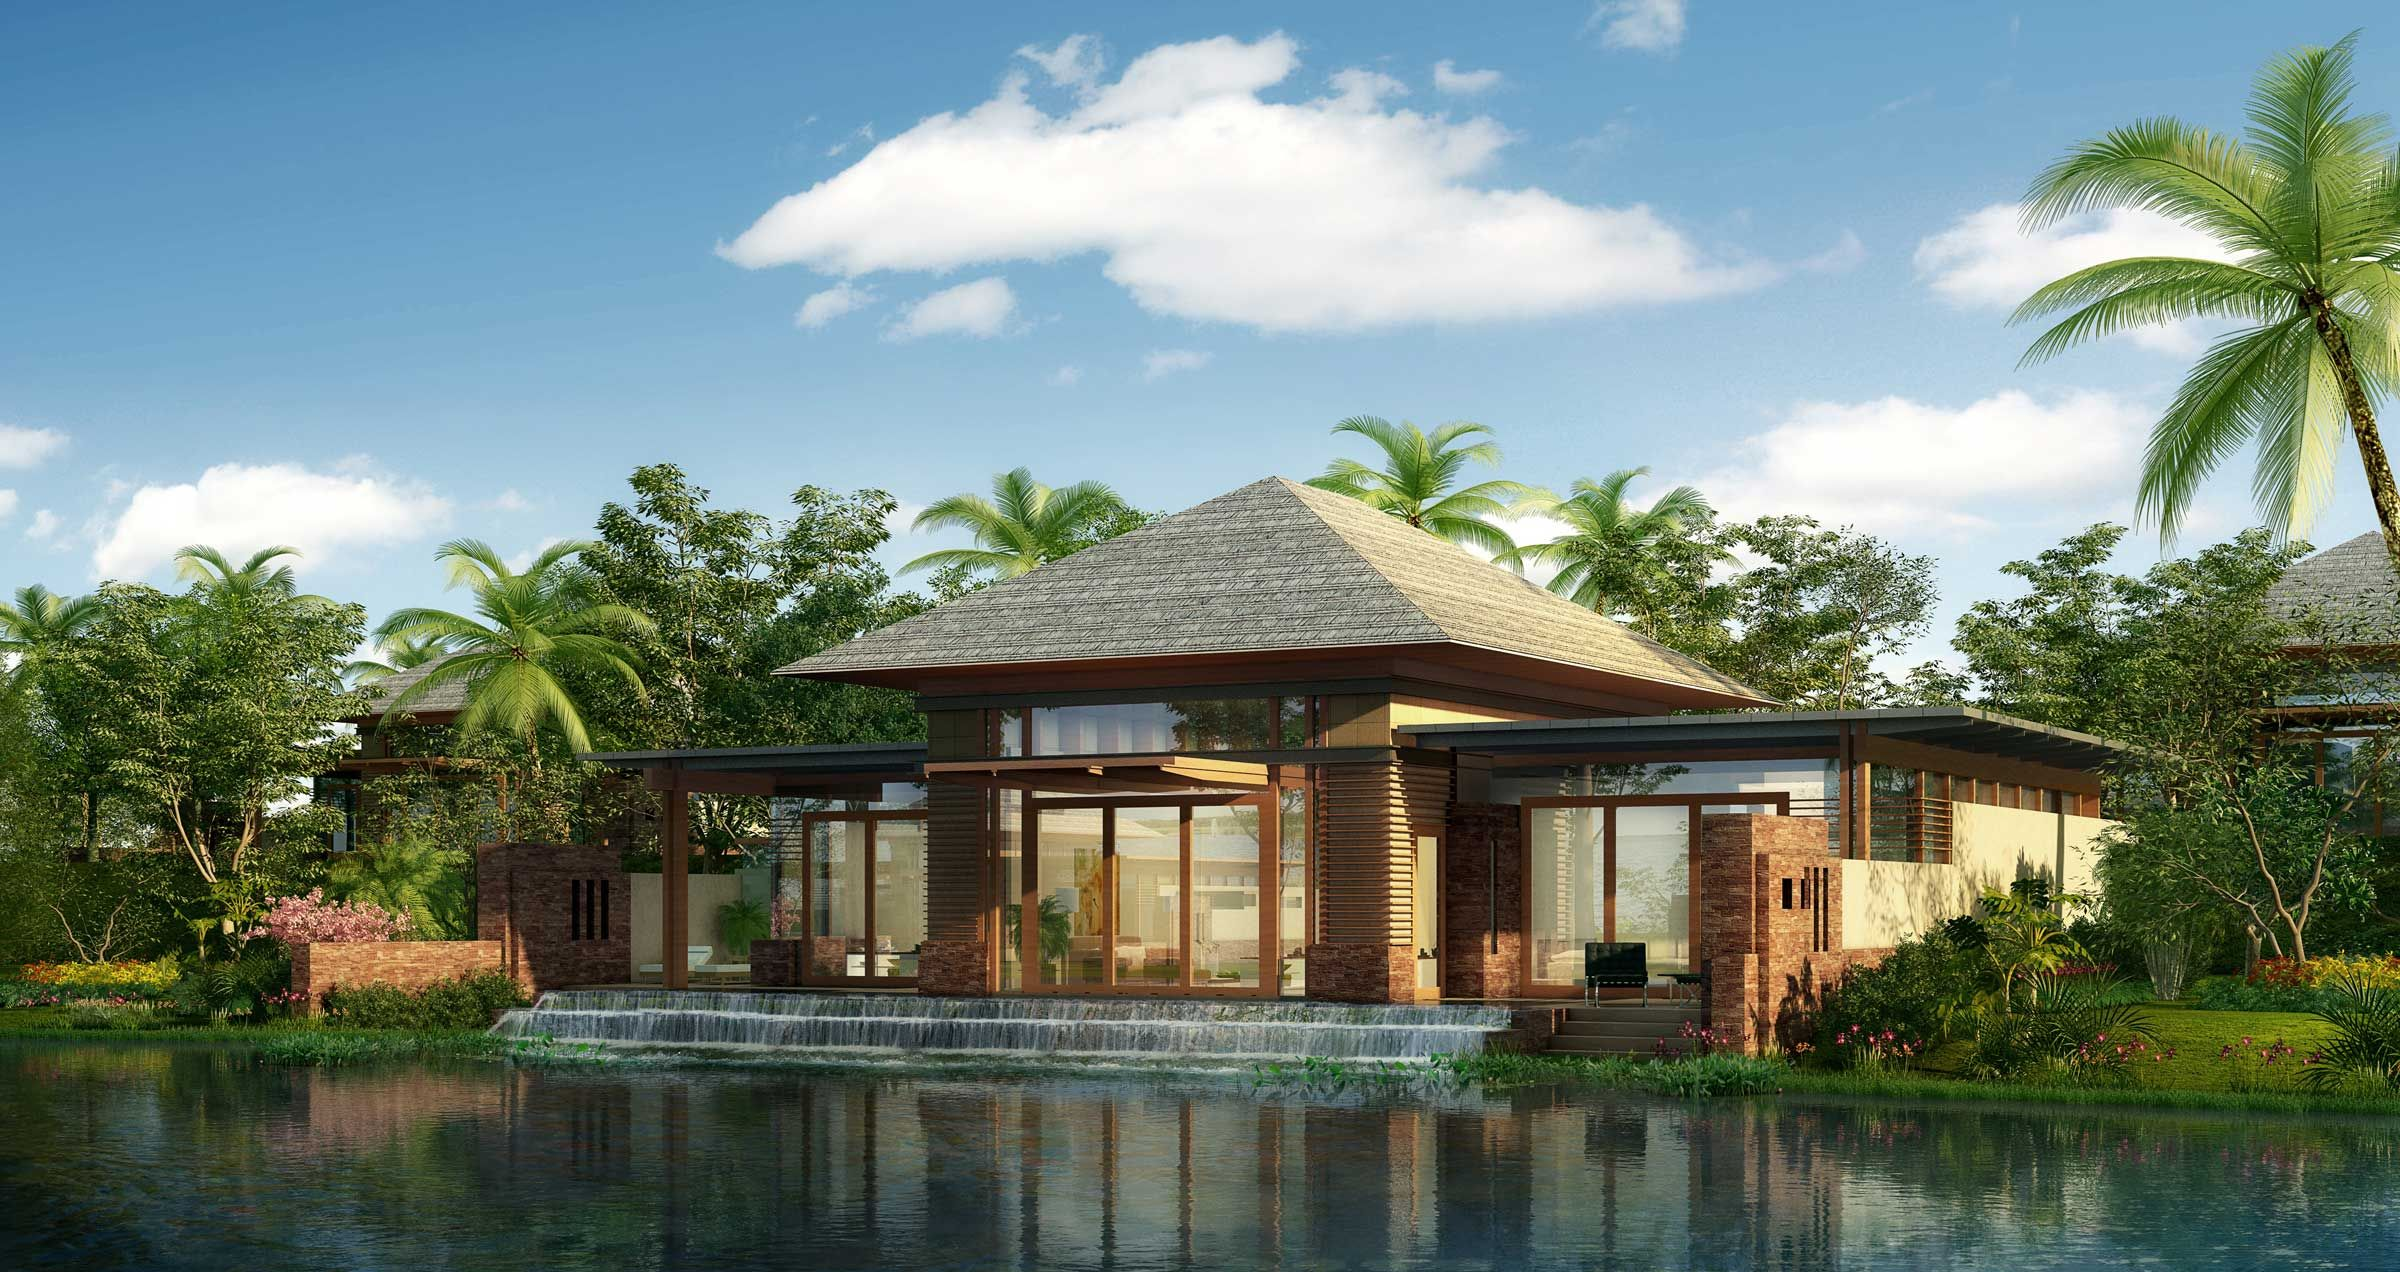 Tropical resort design concept google search resort ideas pinterest villas luxury and for House design concept